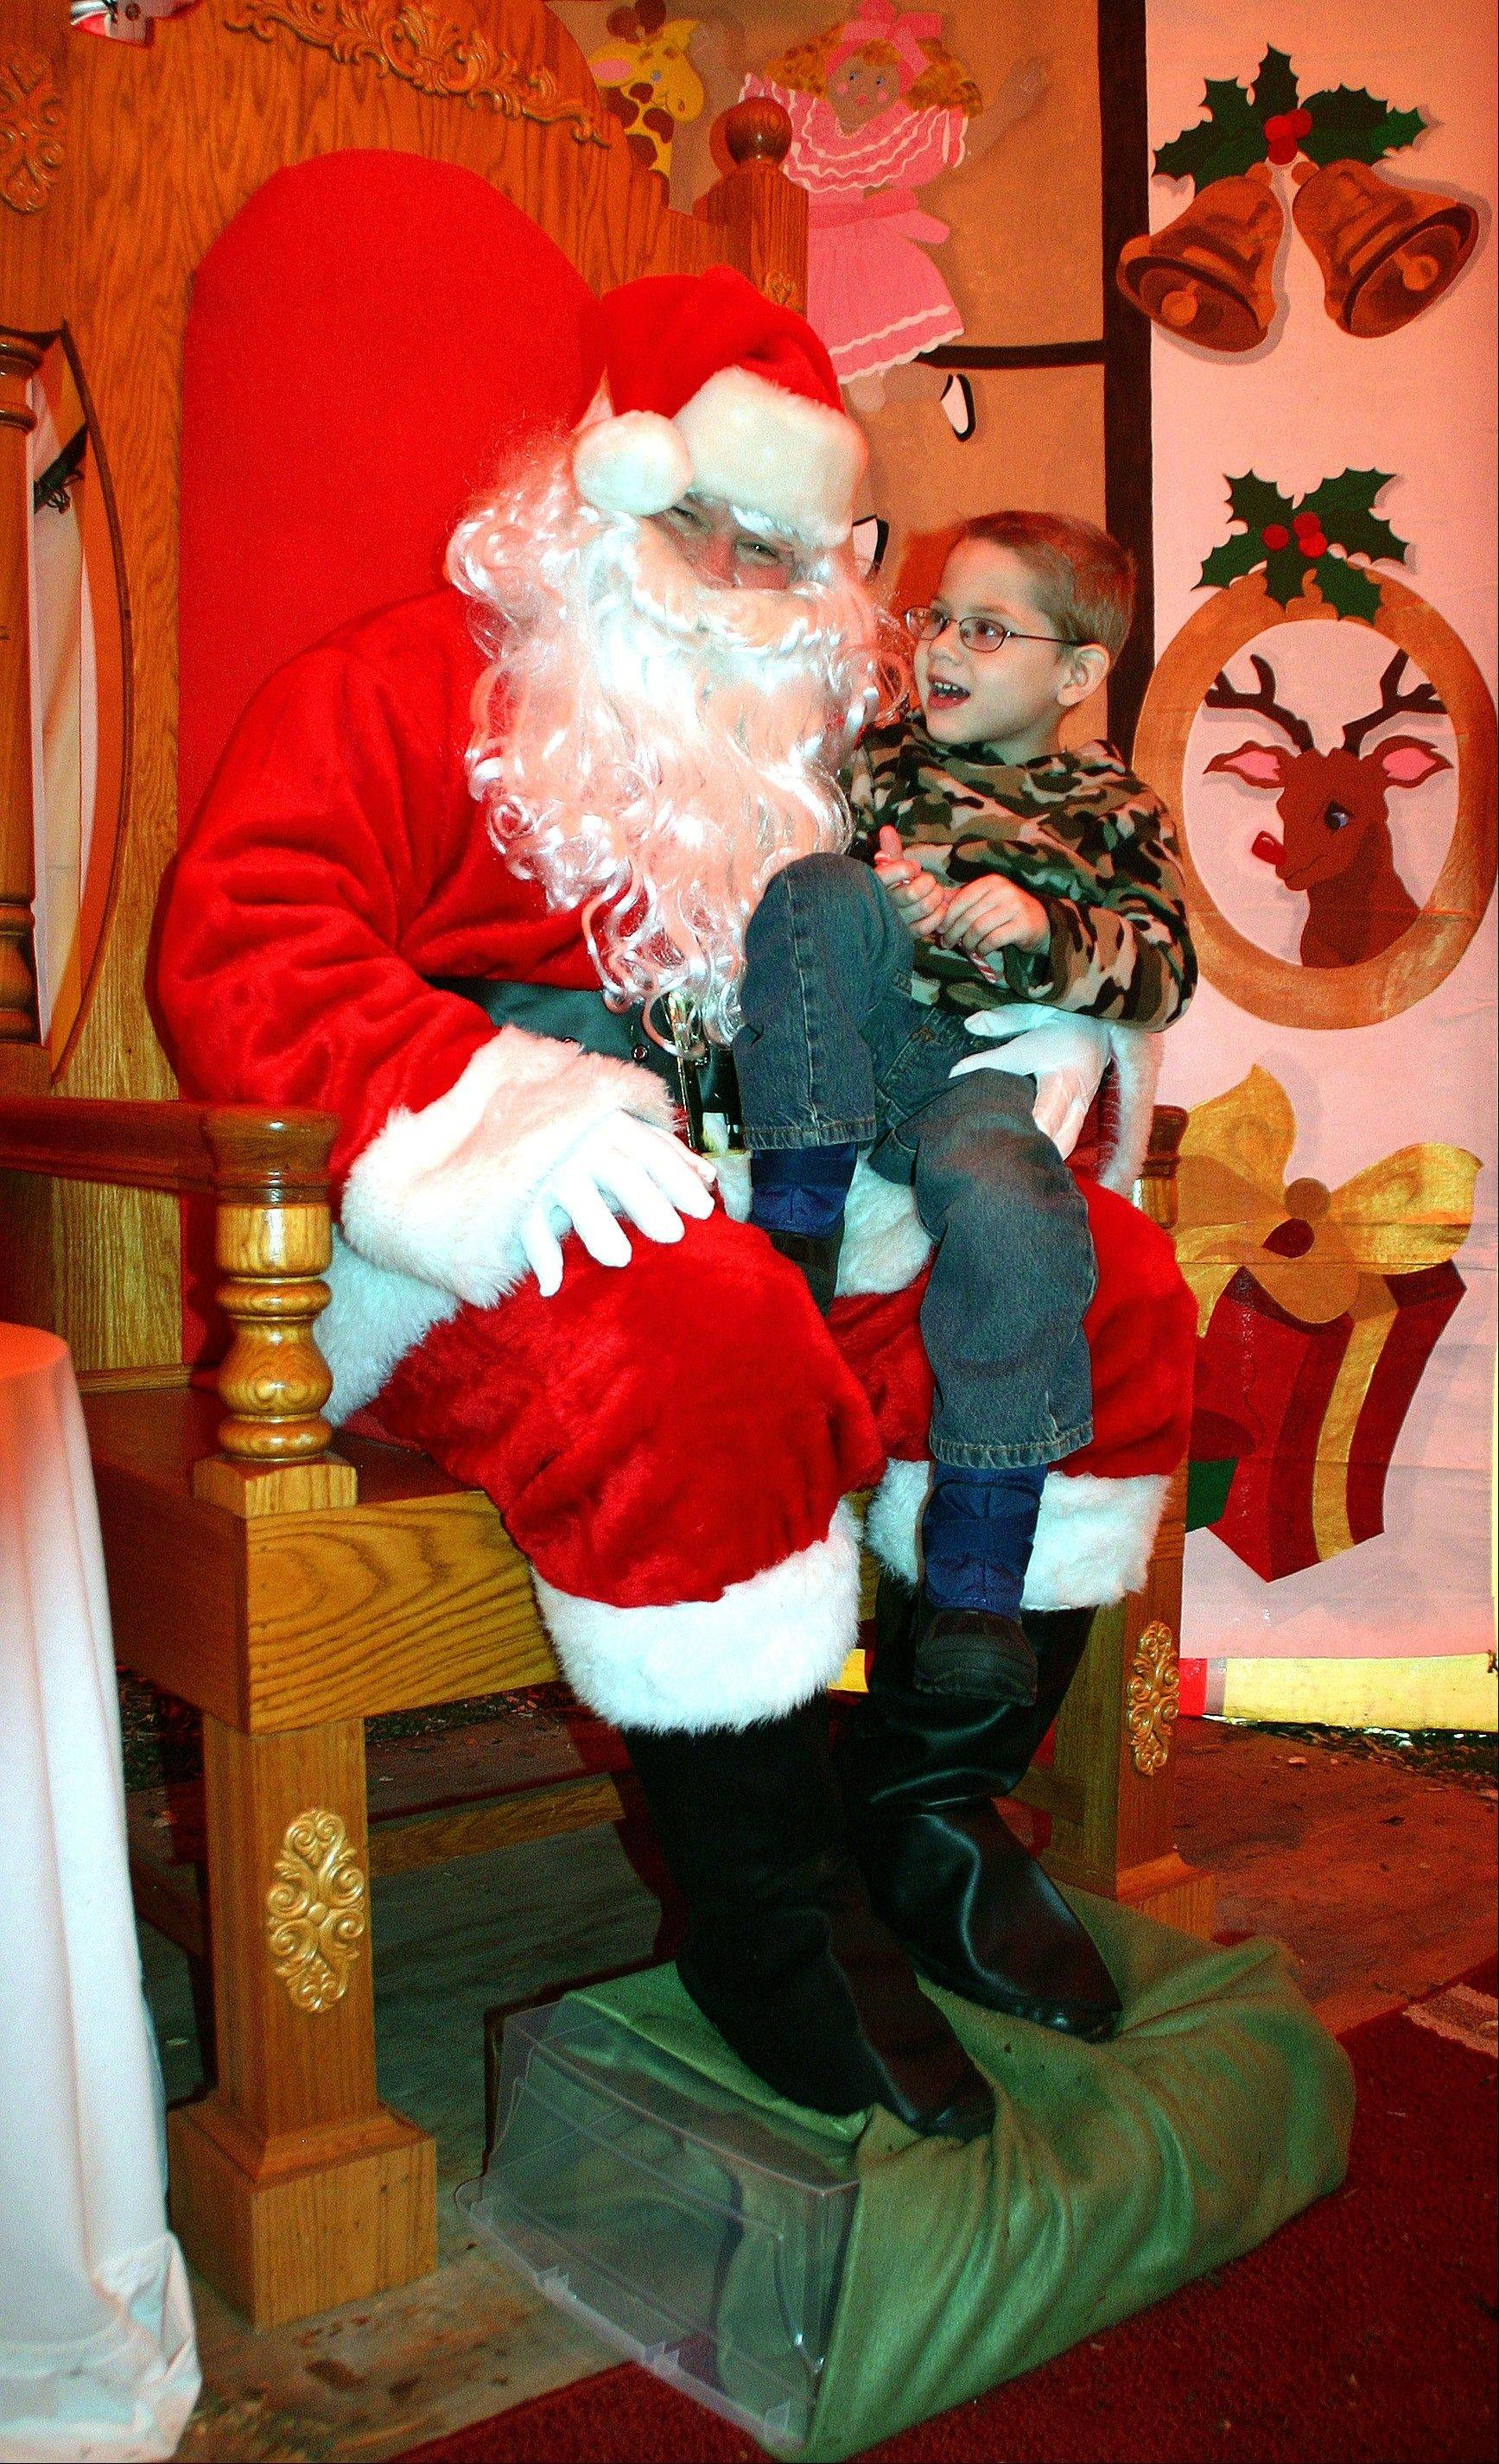 Teddy Christiansen has been a very good boy this year. The chamber is sponsoring free pictures.